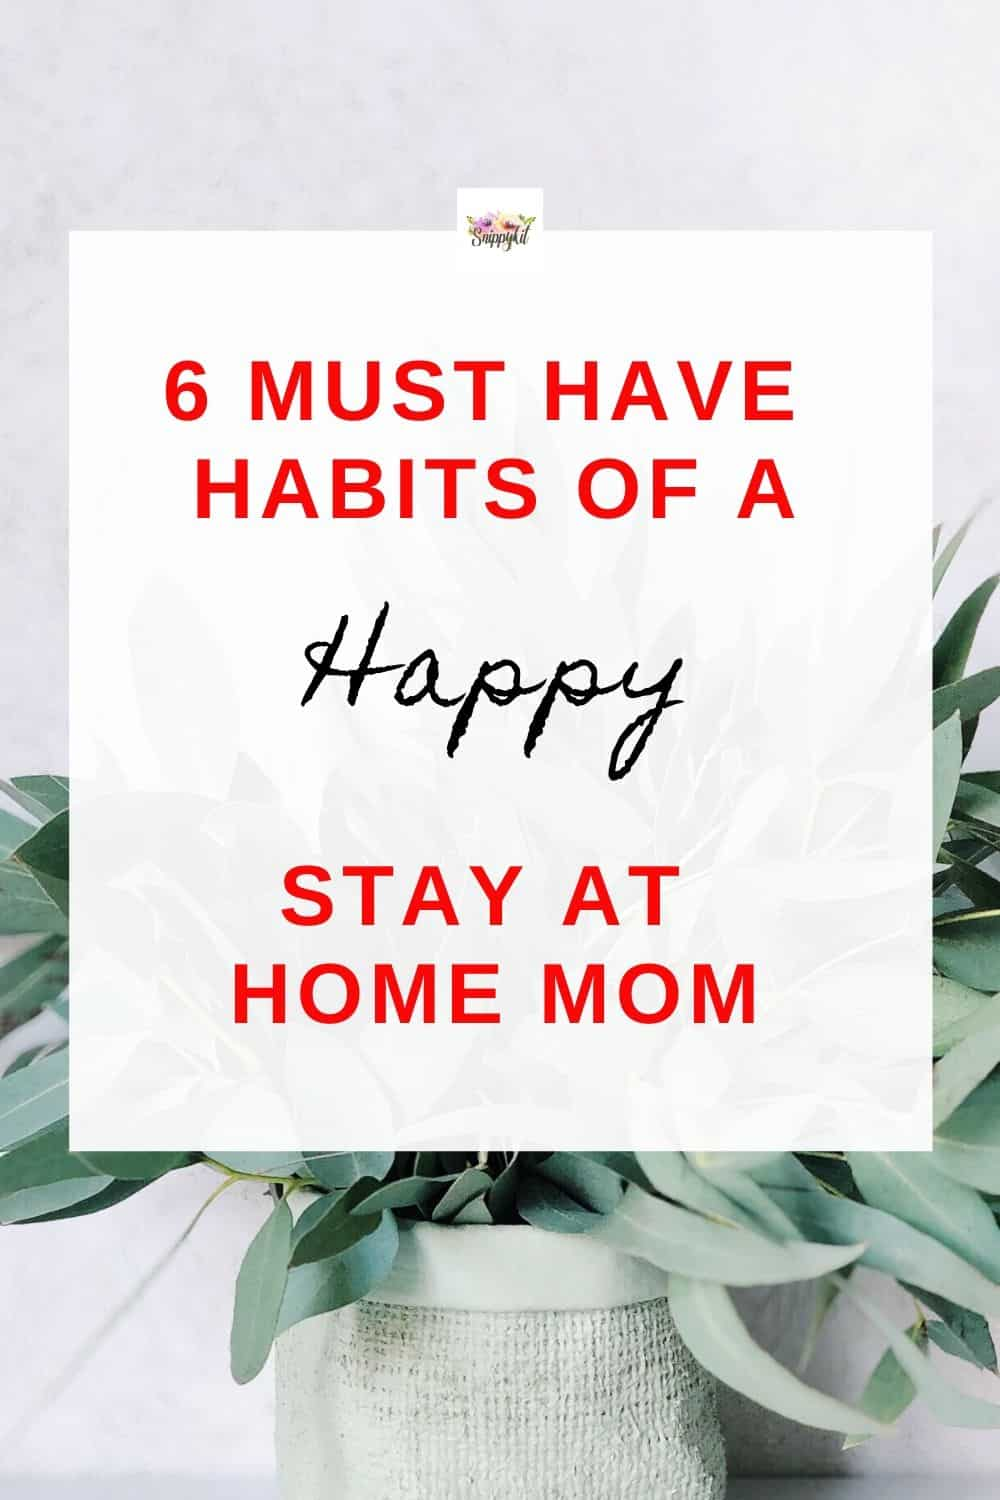 To be a happy stay at home mom you must possesses these 6 habits. Full time mom's survival tips. Best way to be a happy mom. Be a calm and happy mother. #happy #momlife #stayathomemom #parenting #escapewriters